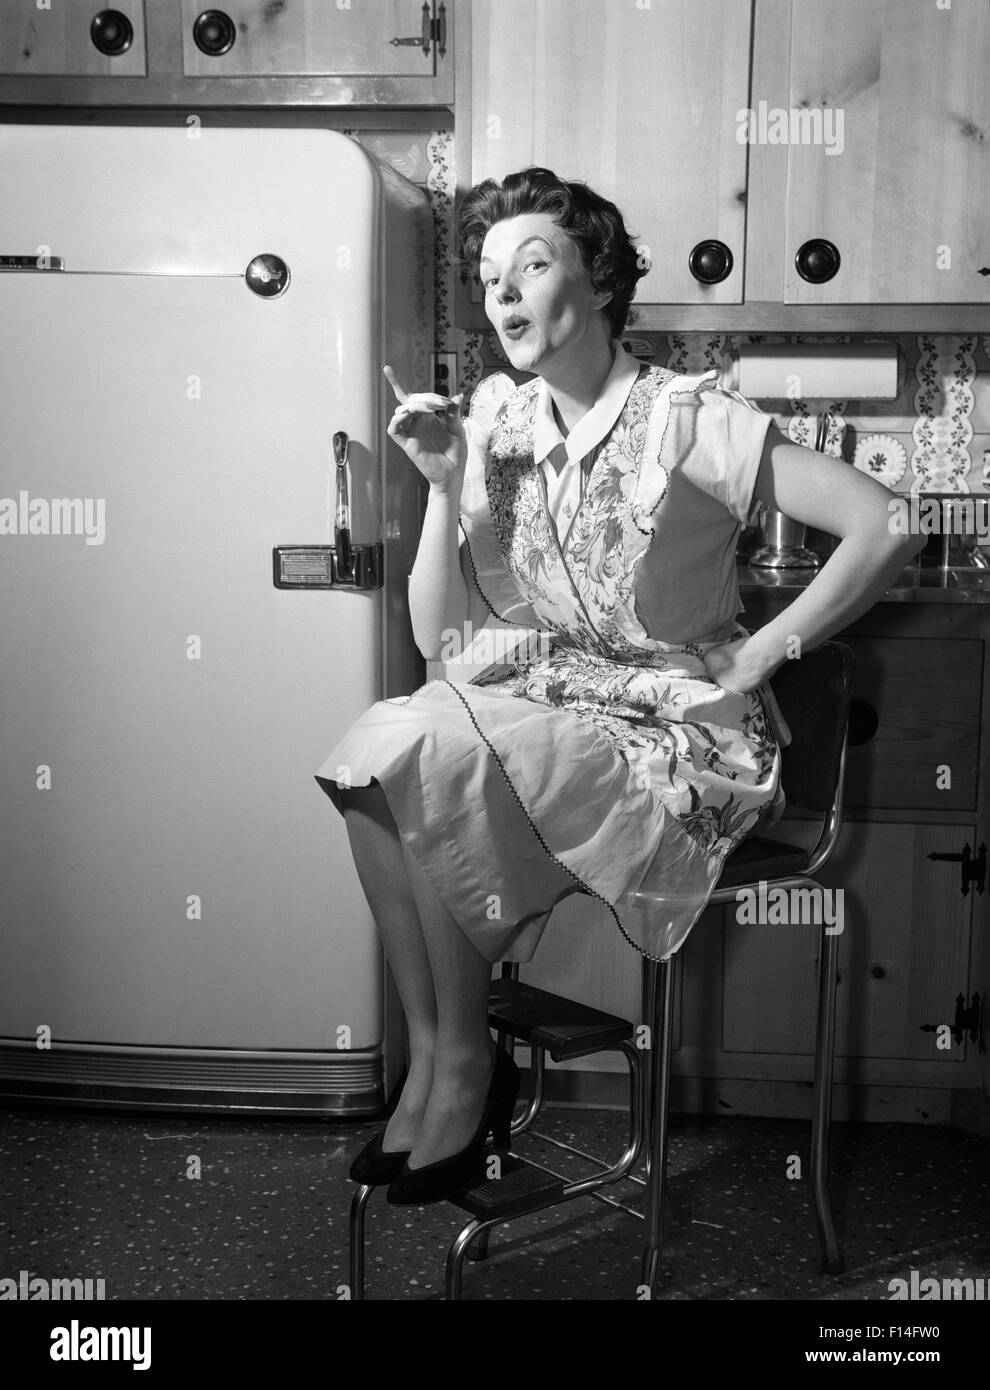 1950s Housewife Sitting On Stool In Kitchen Pointing